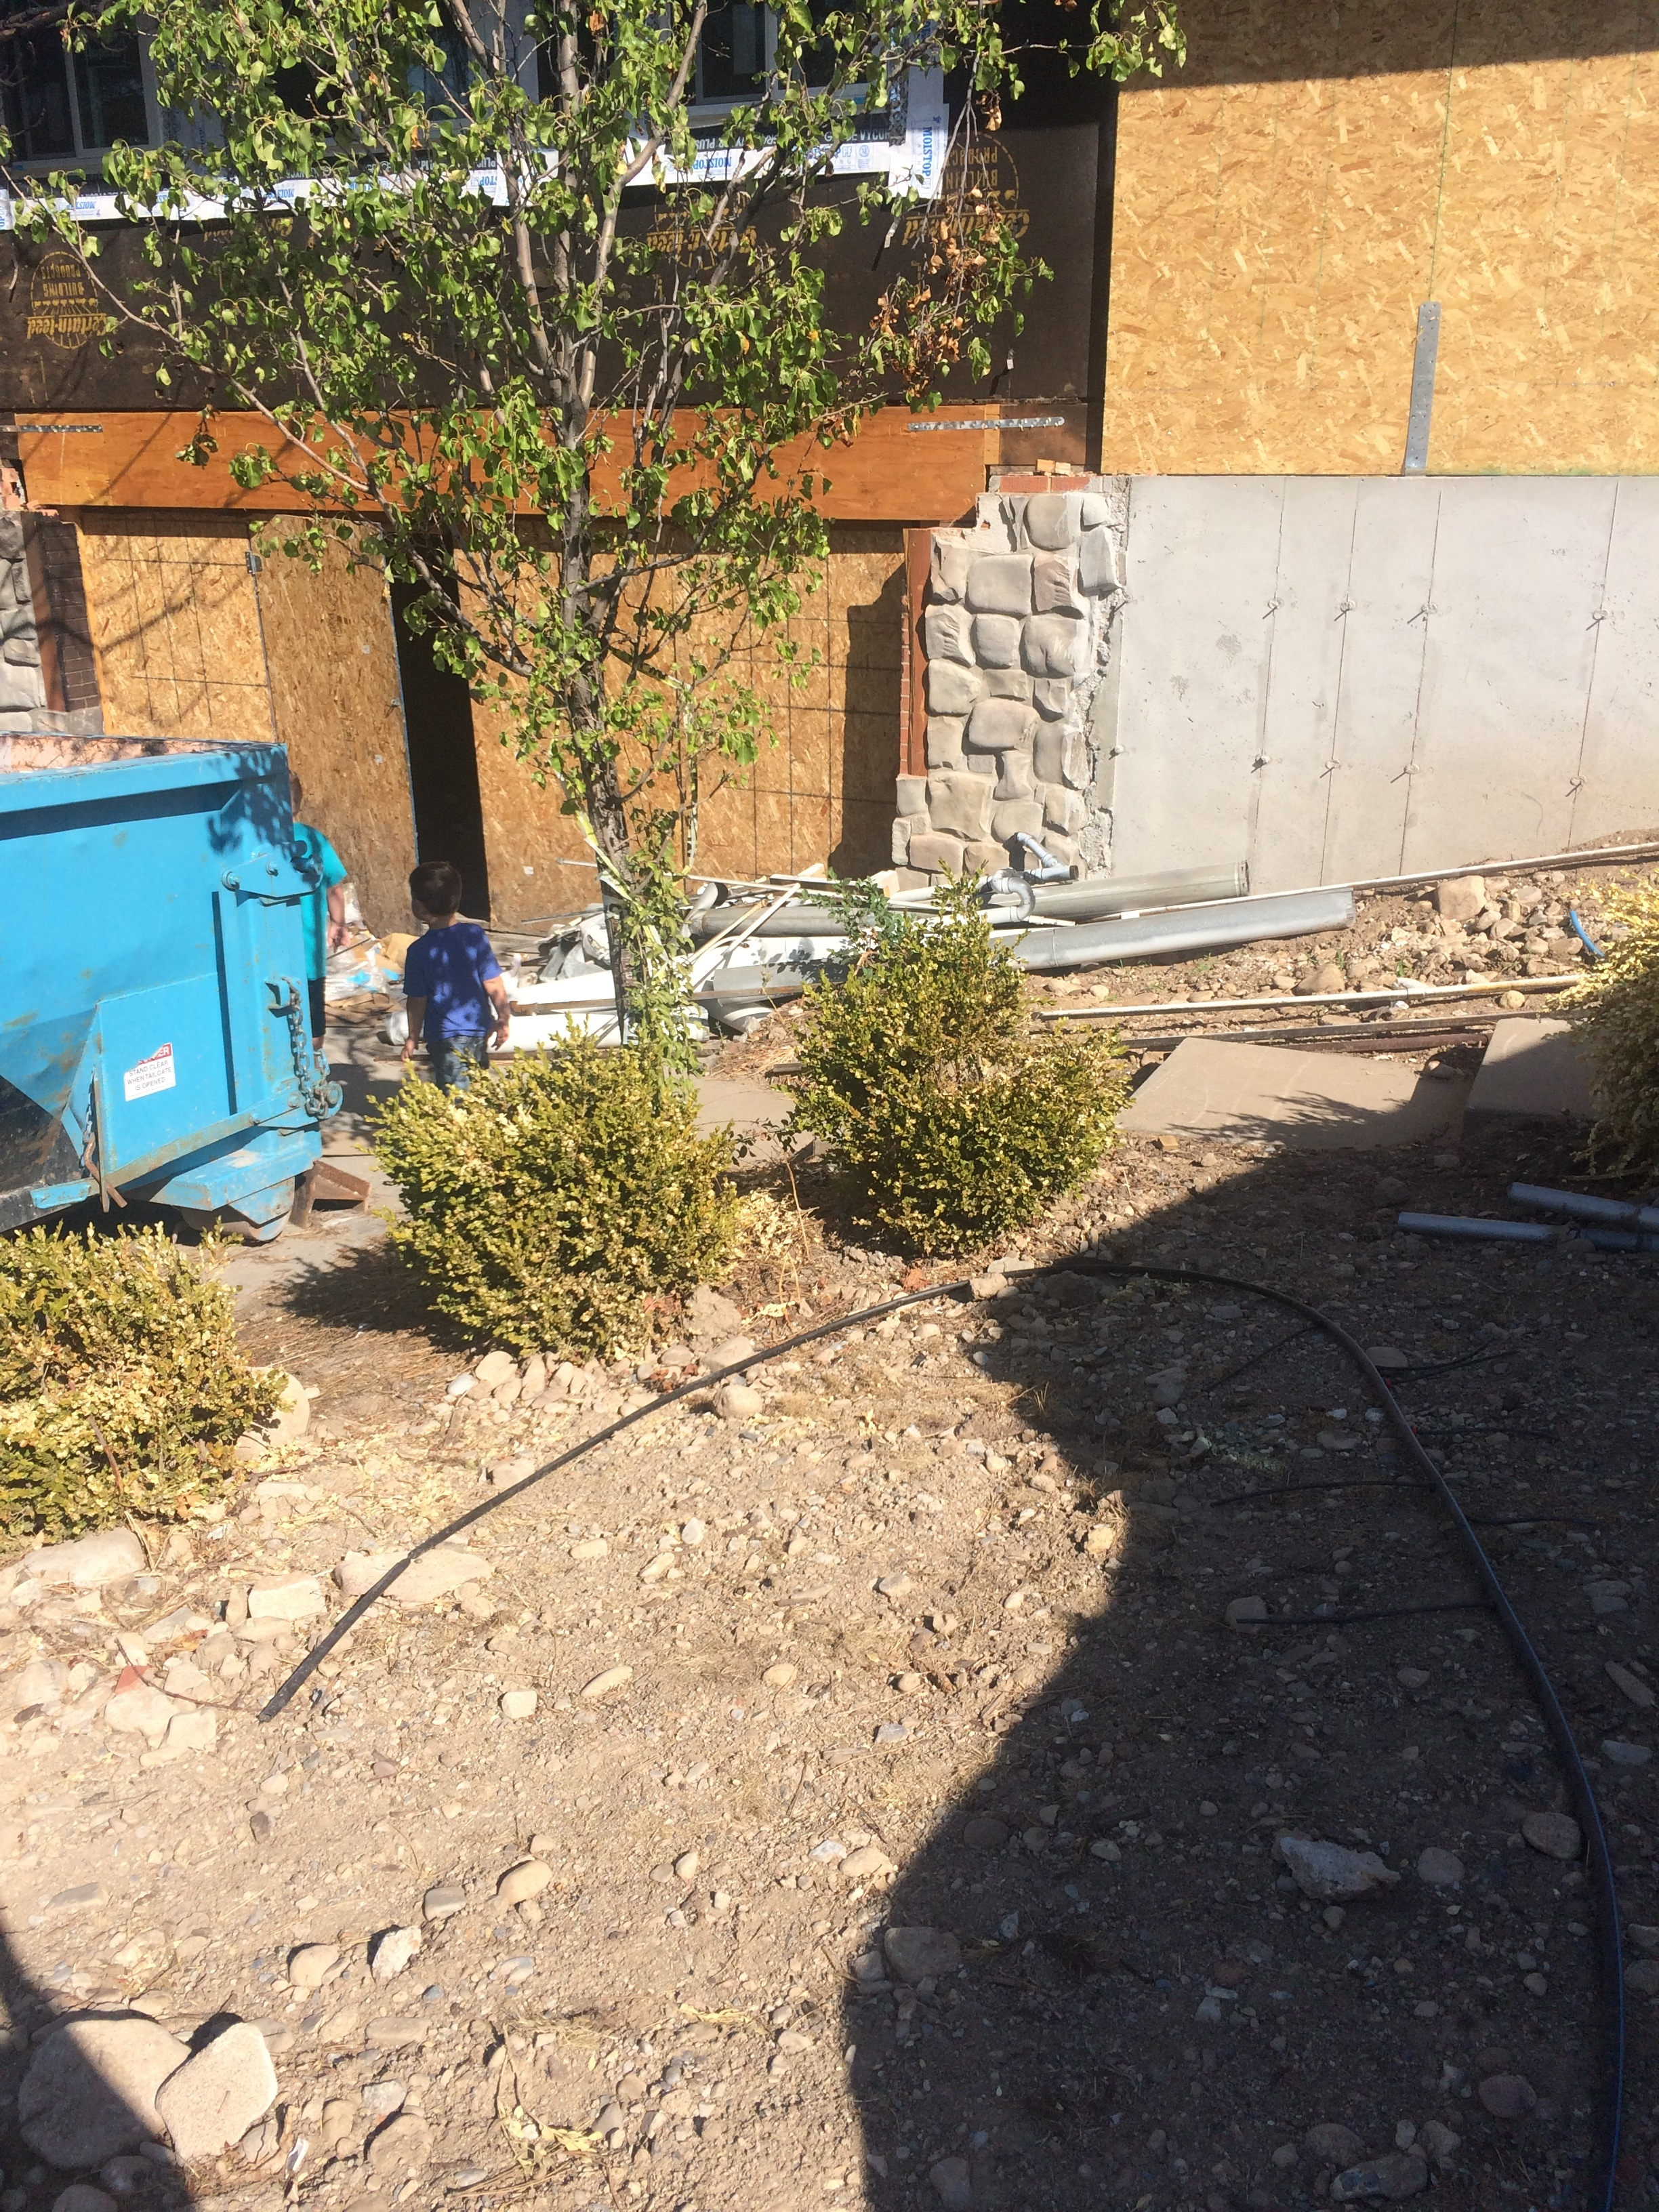 I sent this picture to my insurance adjuster last week after he told me they wouldn't pay for landscaping because, if I water it, the lawn will come back. Now we're getting a landscaping bid, thank goodness for the State Insurance Commissioner.